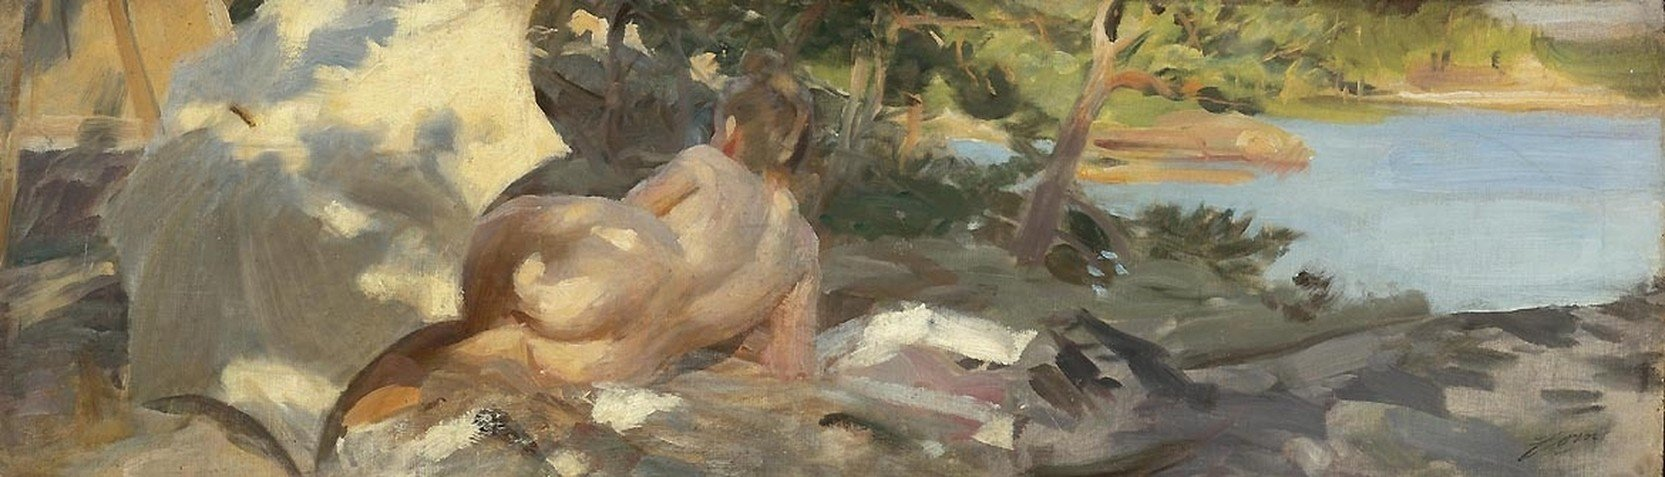 Artistes - Anders Zorn